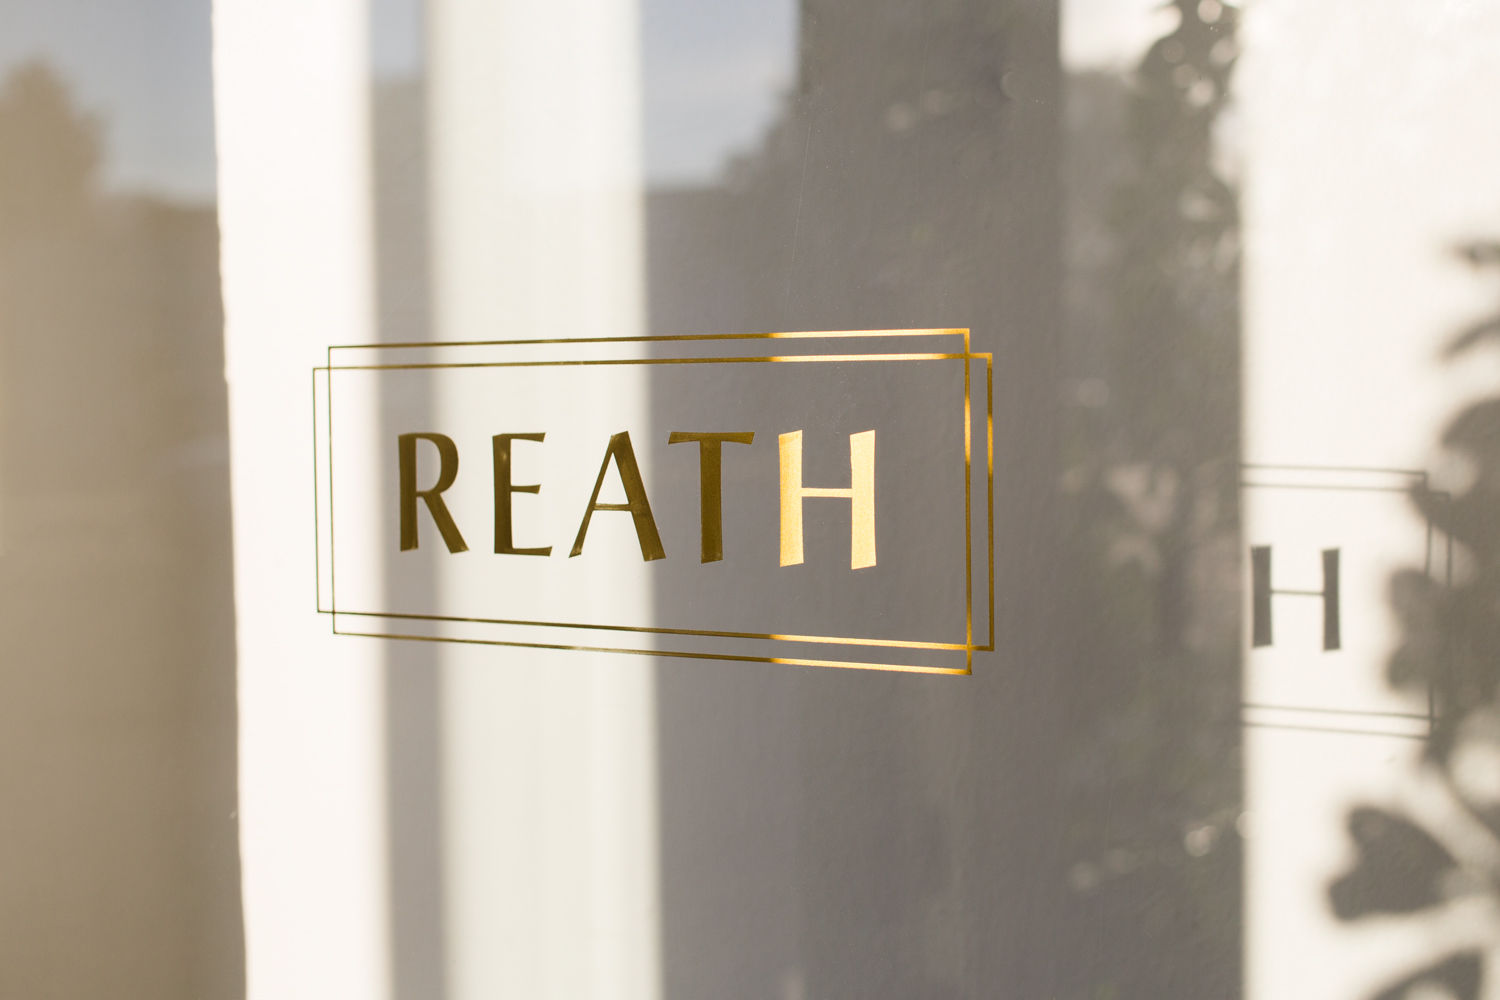 Reath  Identity & Website